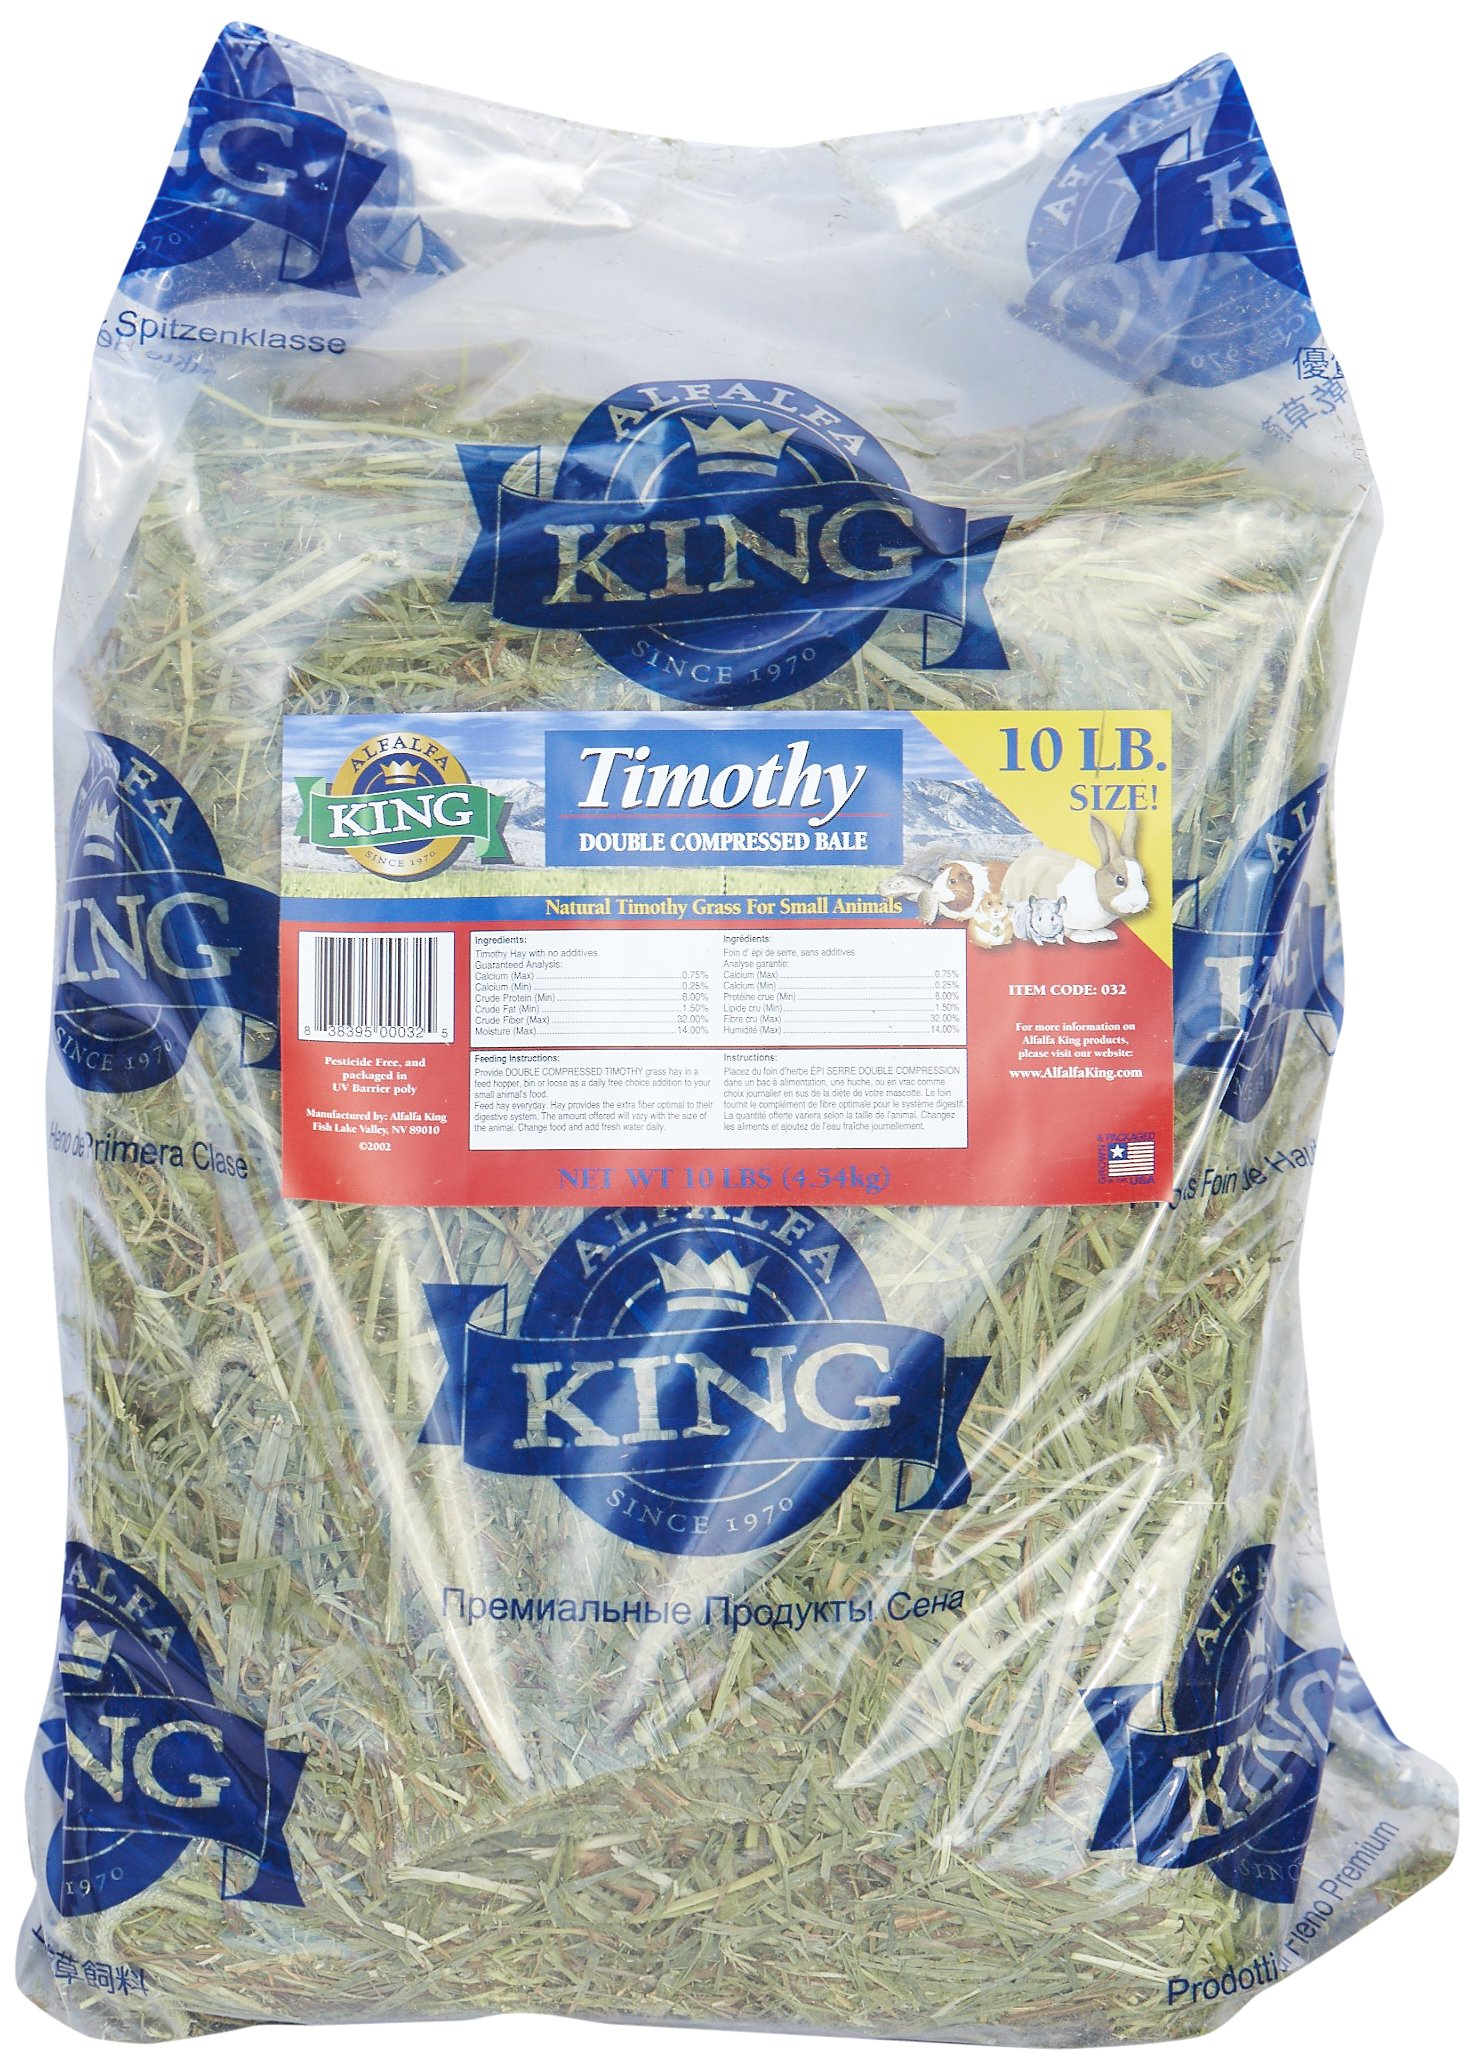 Alfalfa King Double Compressed Timothy Hay Pet Food, 12 by 18 by 8-Inch by Alfalfa King (Image #1)